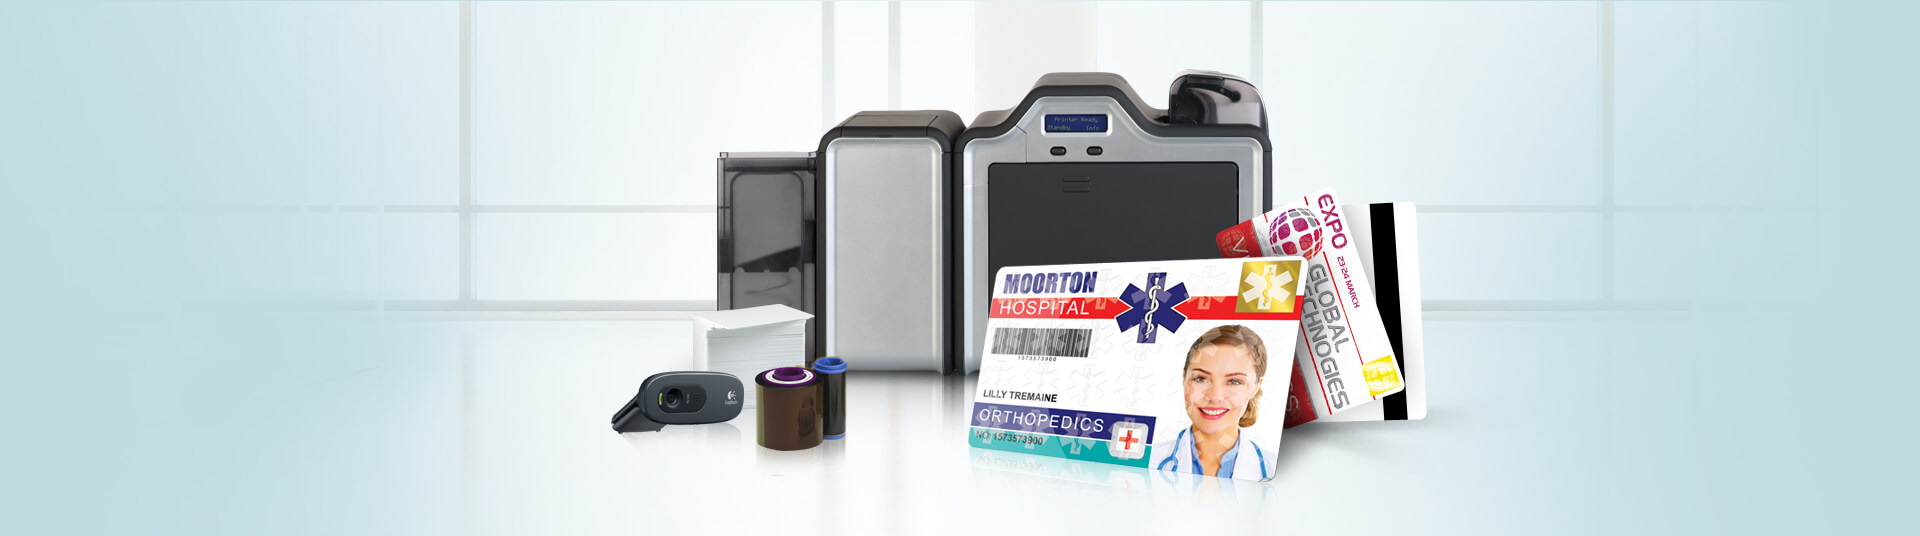 Hospital ID Badges with Zebra Eltron Photo ID Printers